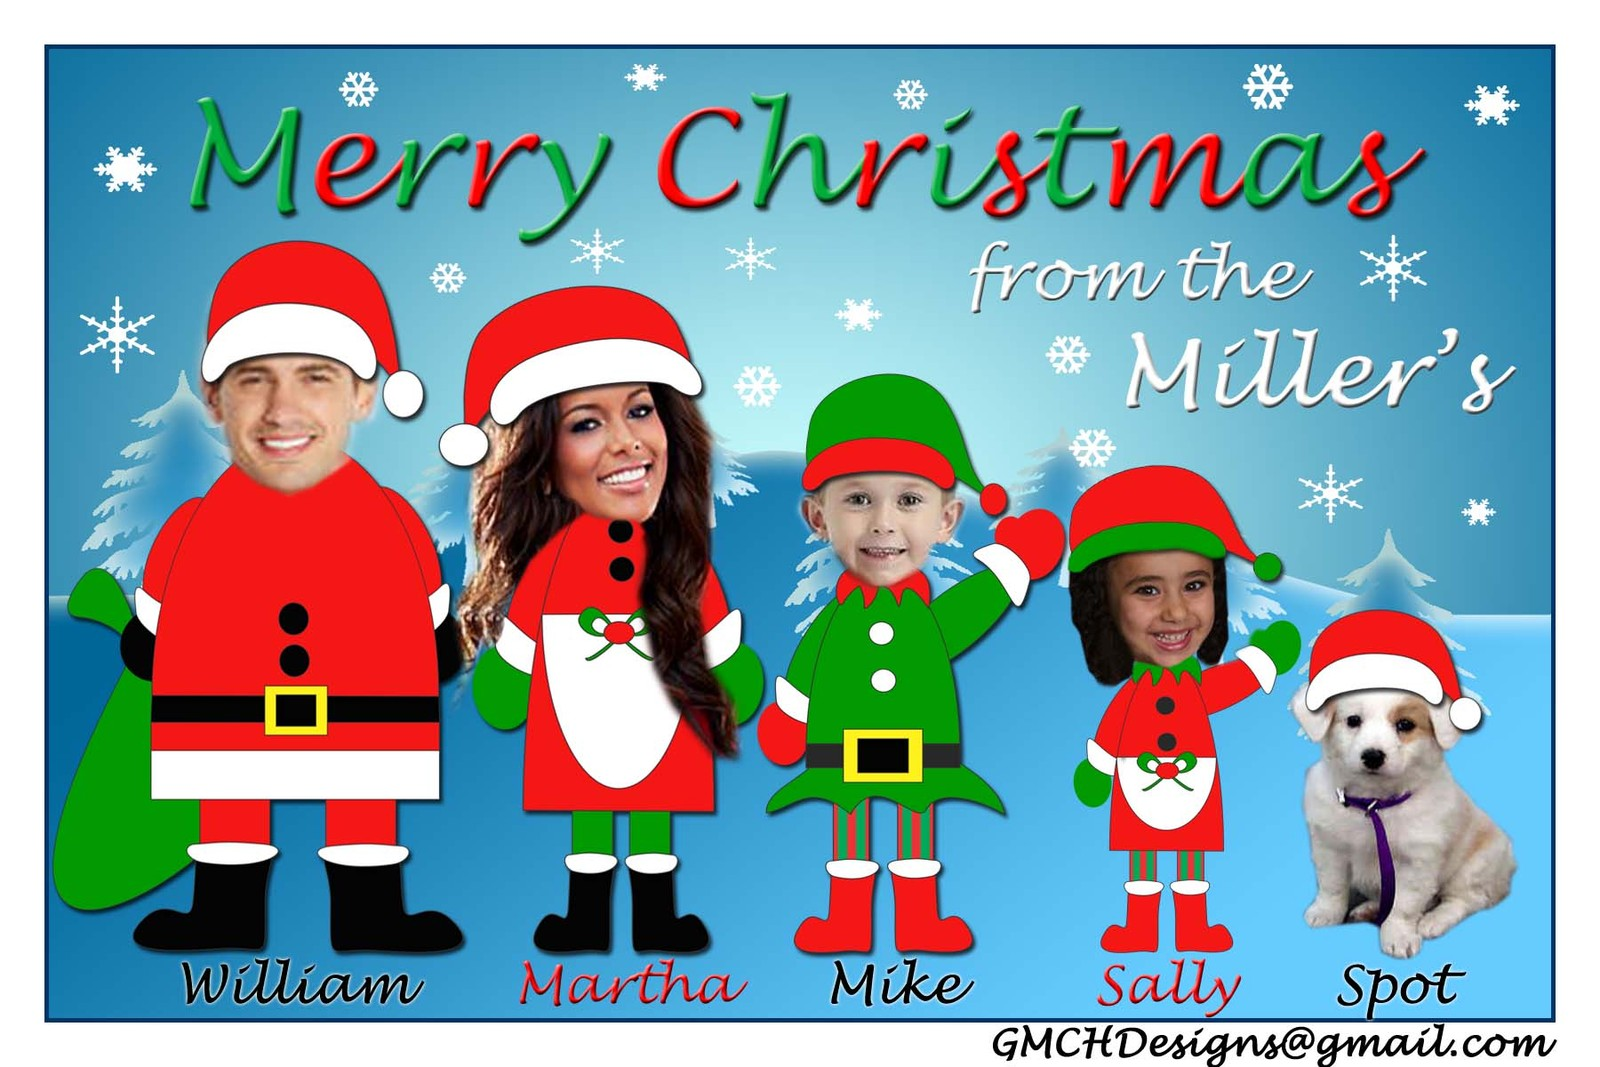 Unique fun custom christmas holiday card personalized for Unique family christmas cards